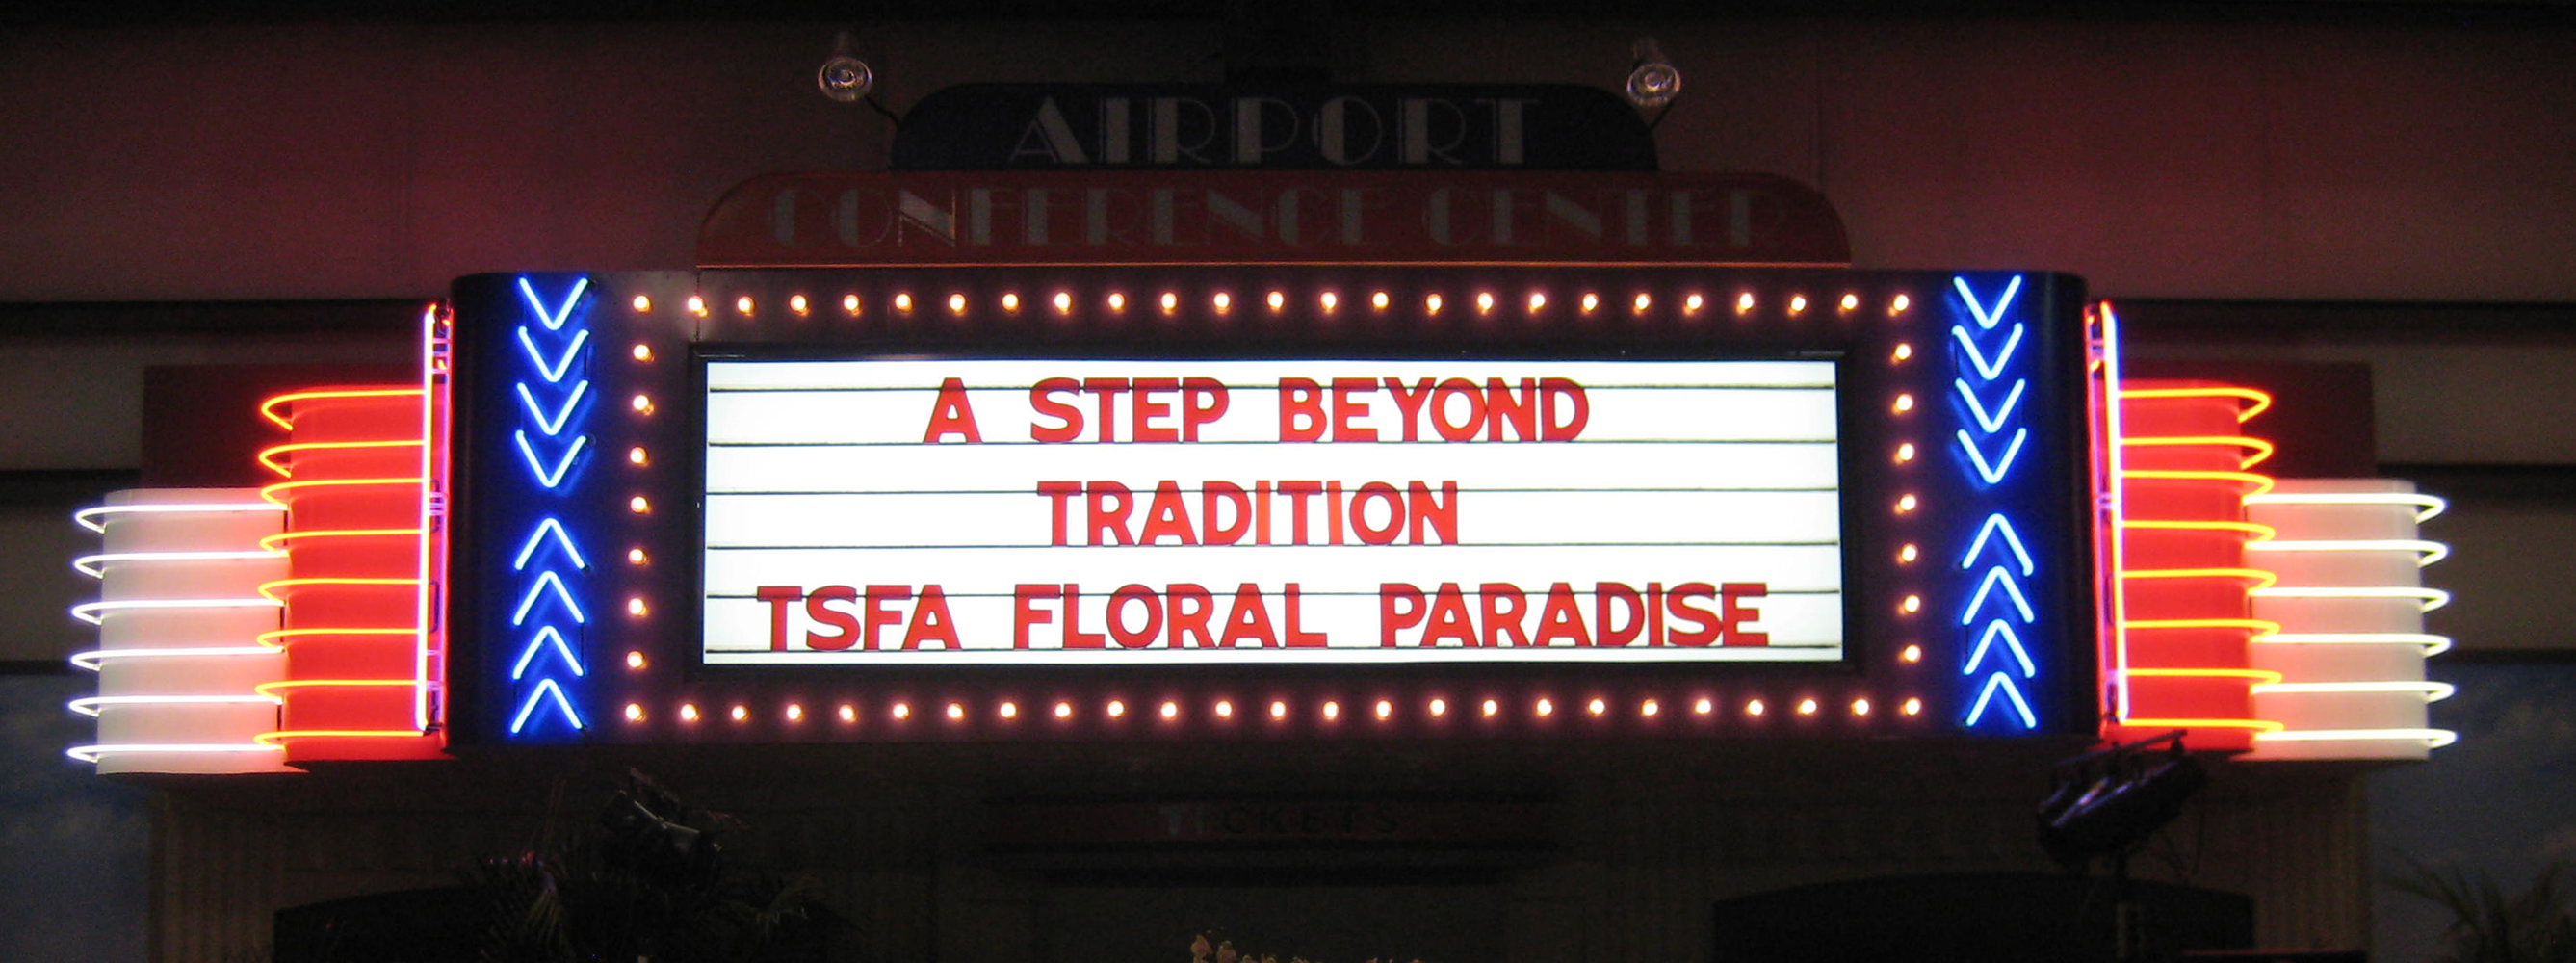 Texas State Florist Association's Annual Convention